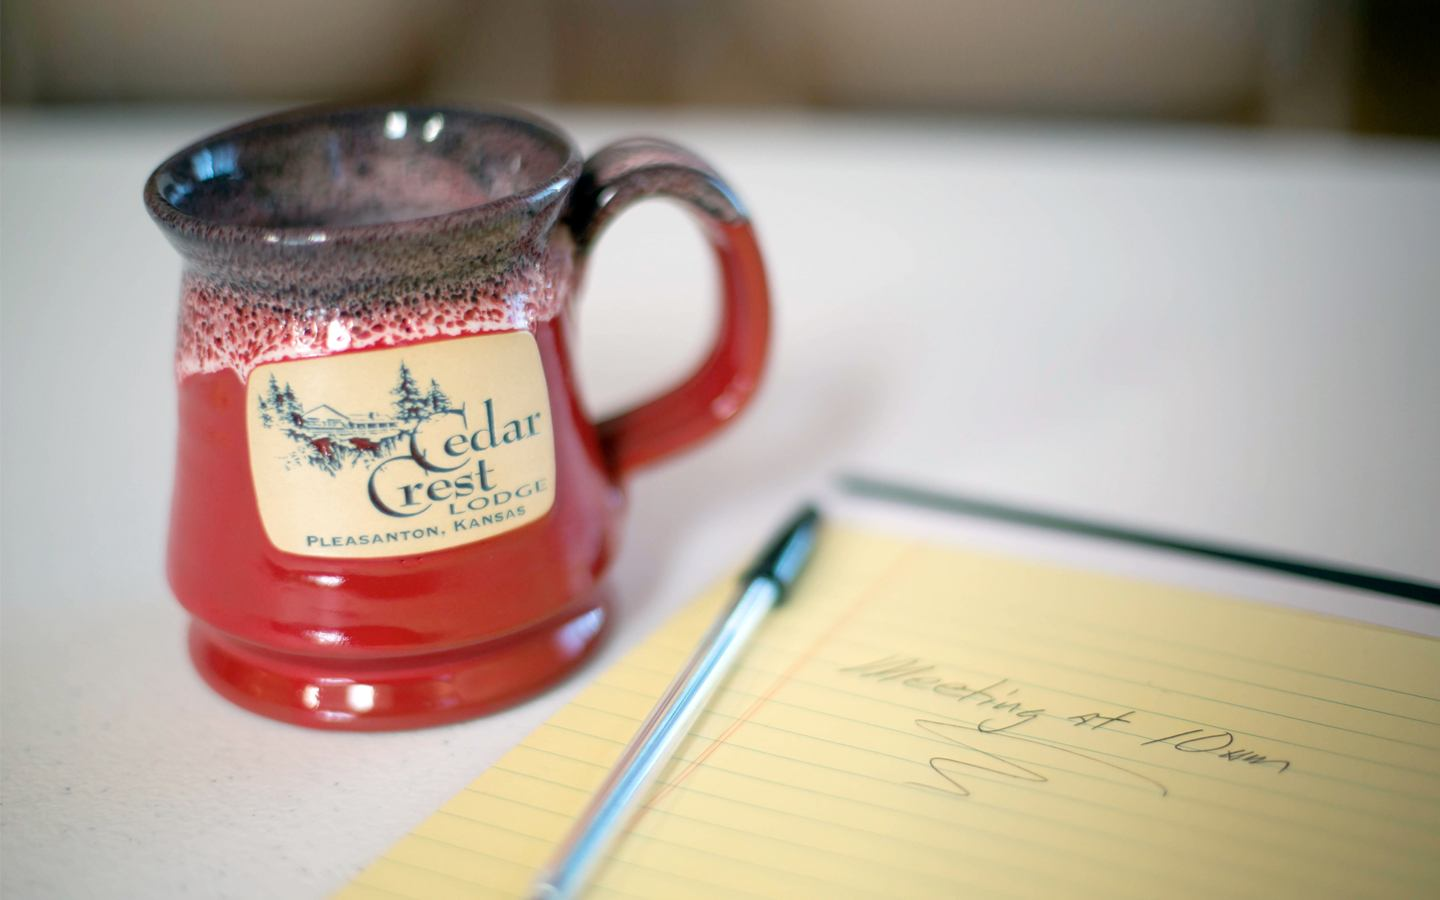 Cedar Crest Mug and Notepad